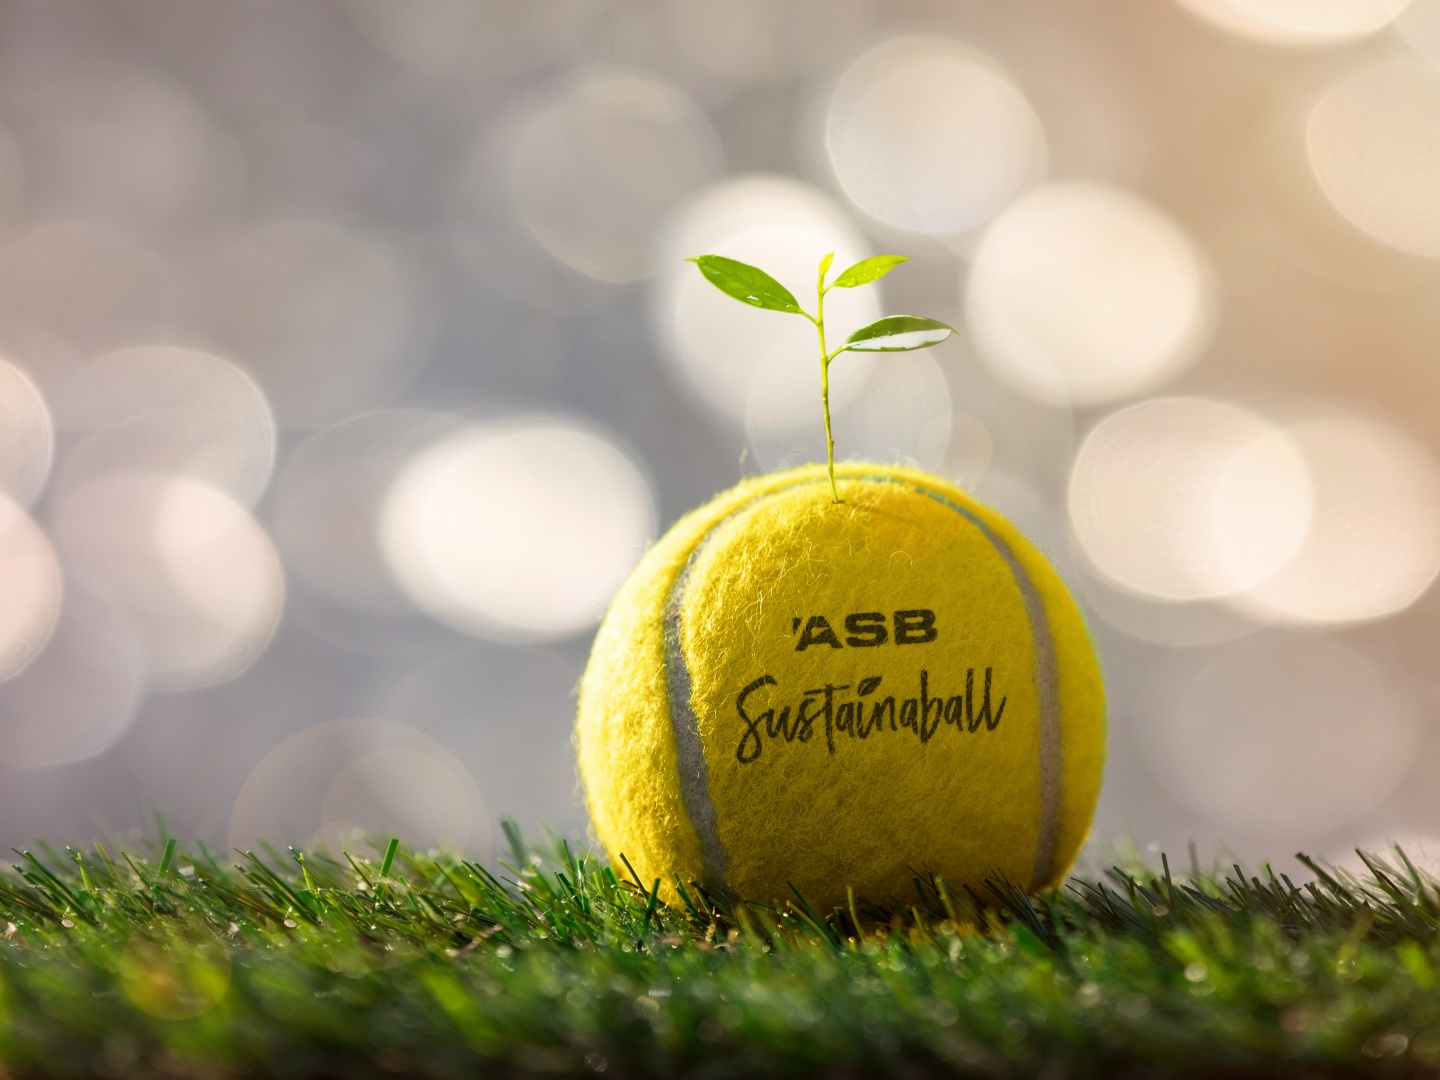 Sustainaball - A biodegradable tennis ball that plants a tree. Thumbnail